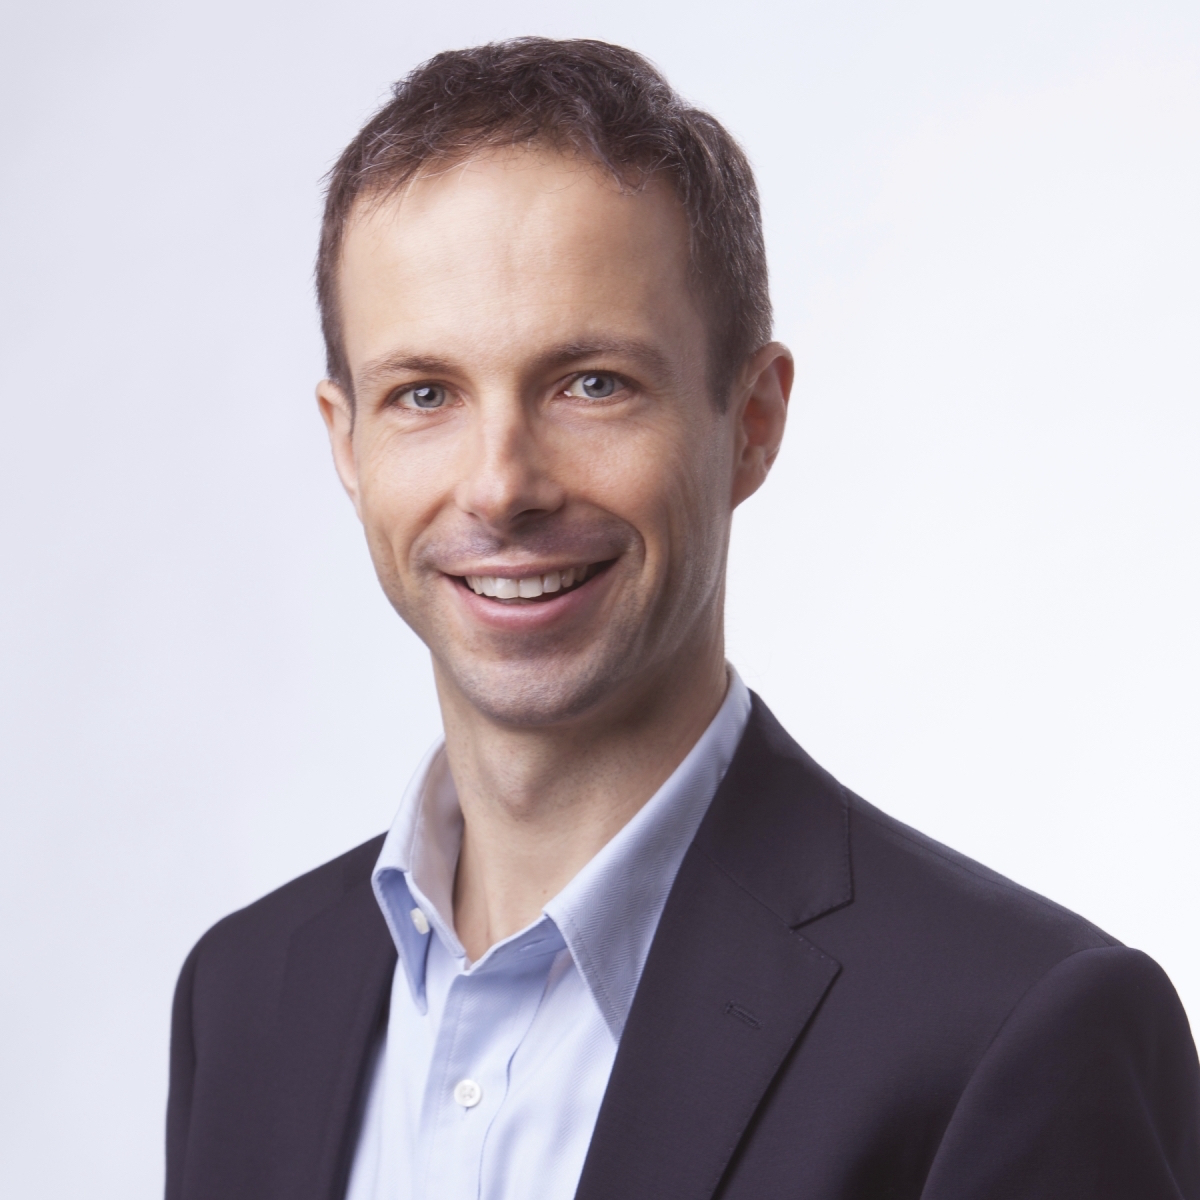 Seedcamp Podcast, Episode 41: Tytus Michalski on the Startup Investment Ecosystem in Asia